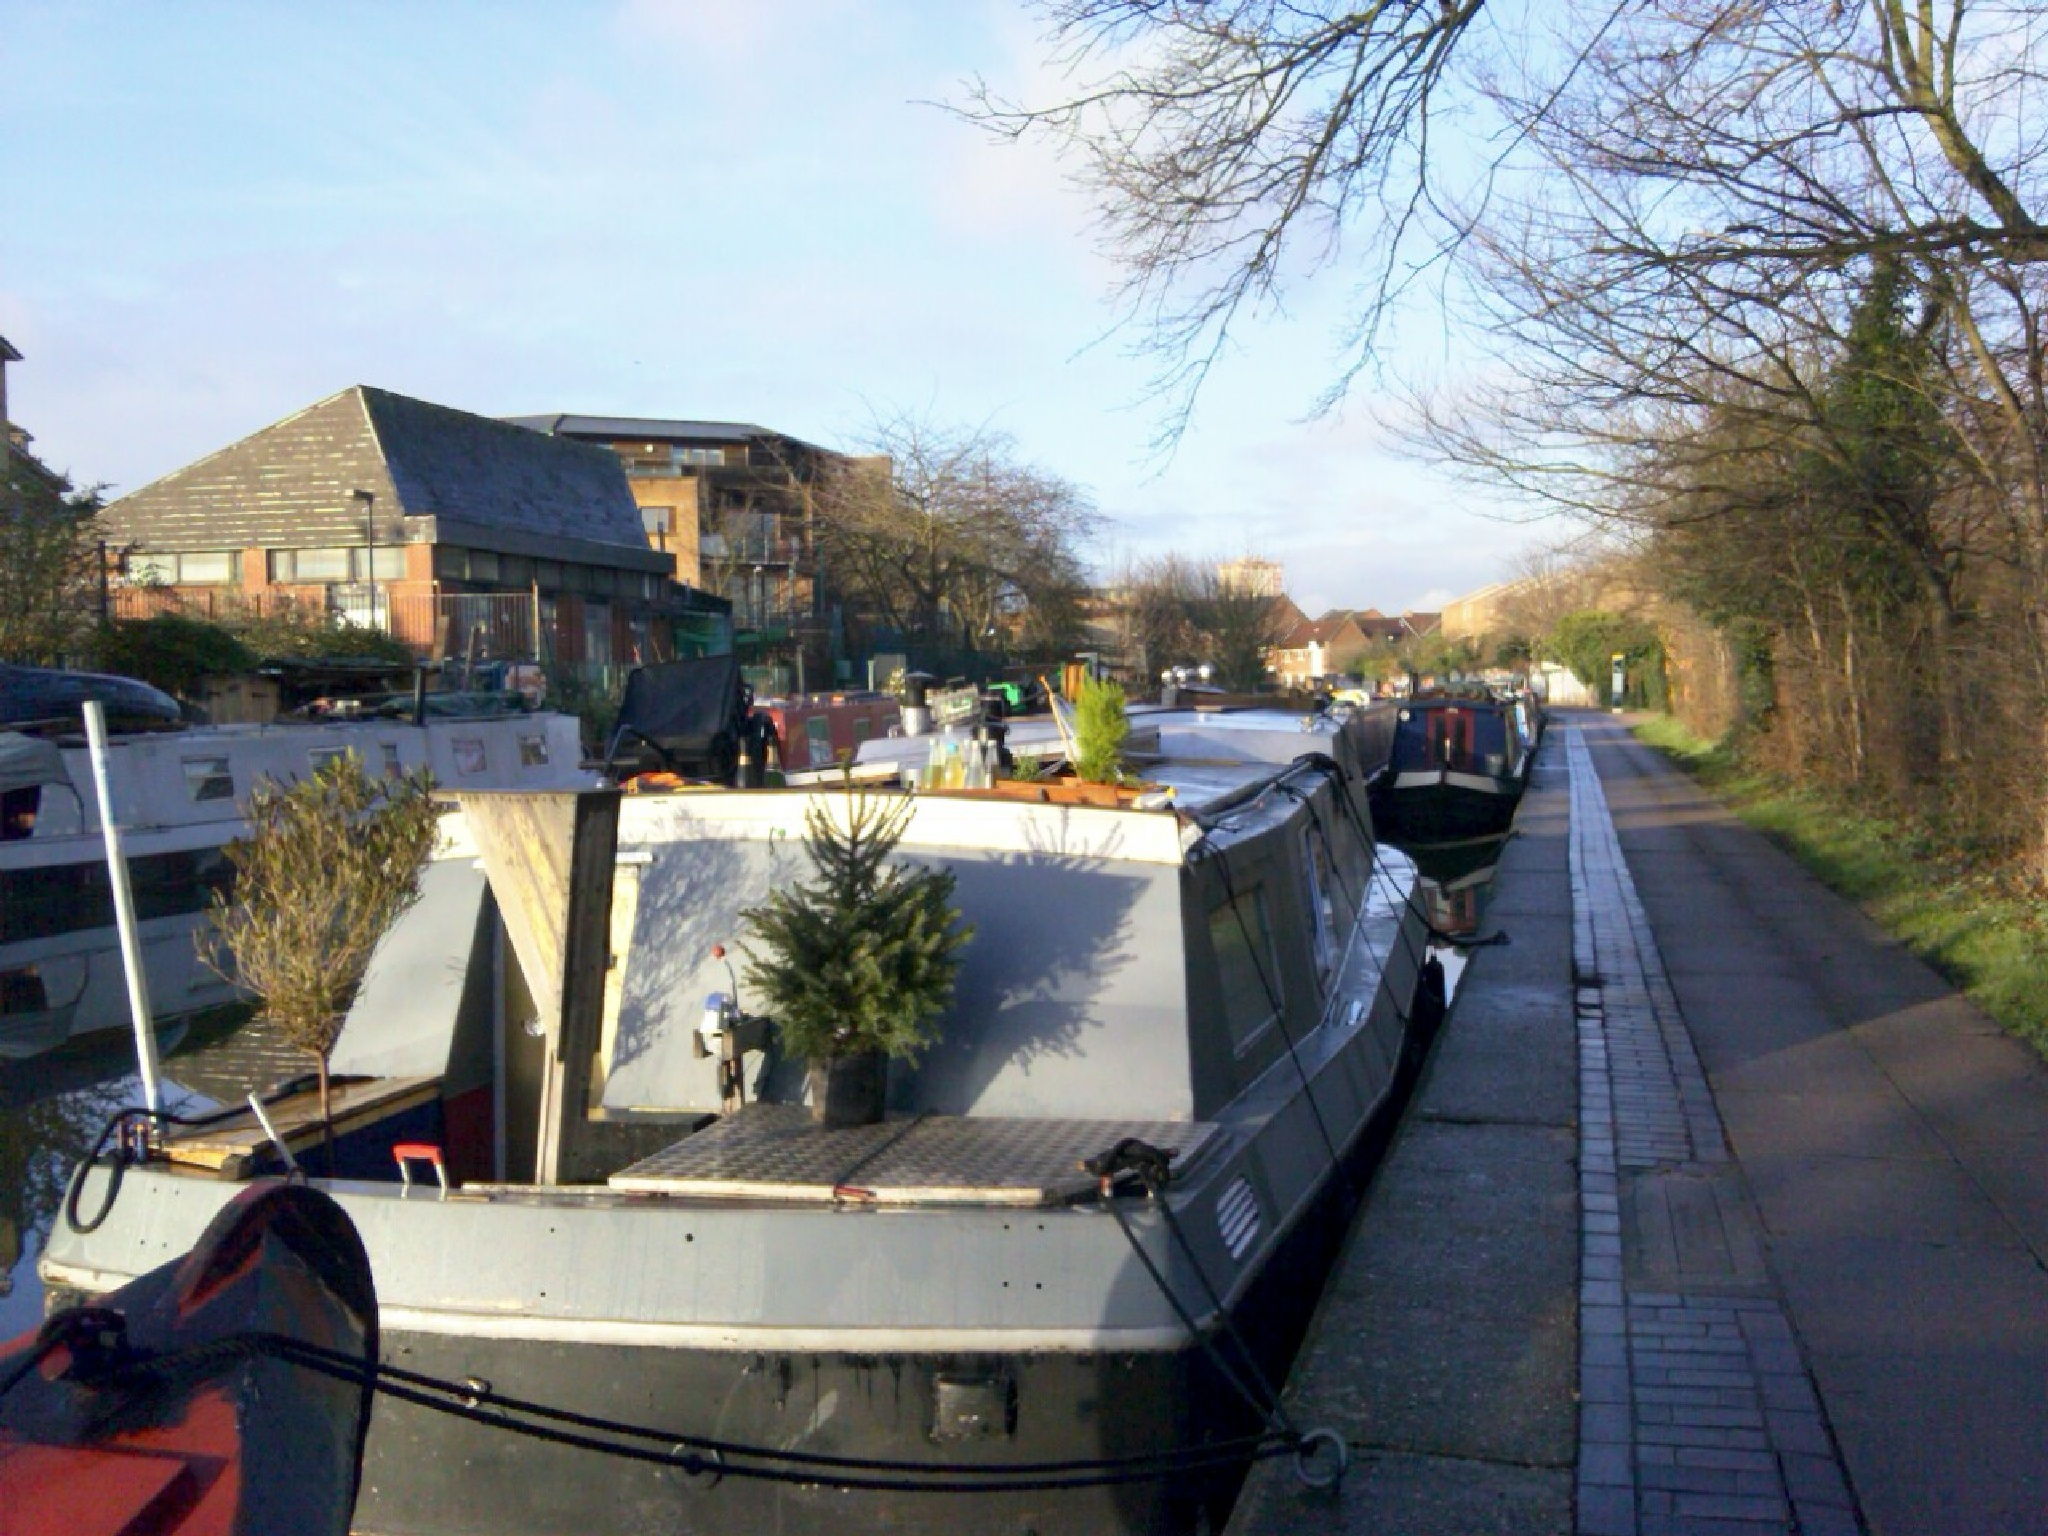 A PRETTY LOOKlNG BOAT HOME BY THE CANAL, LONDON / UK by Akin Saner